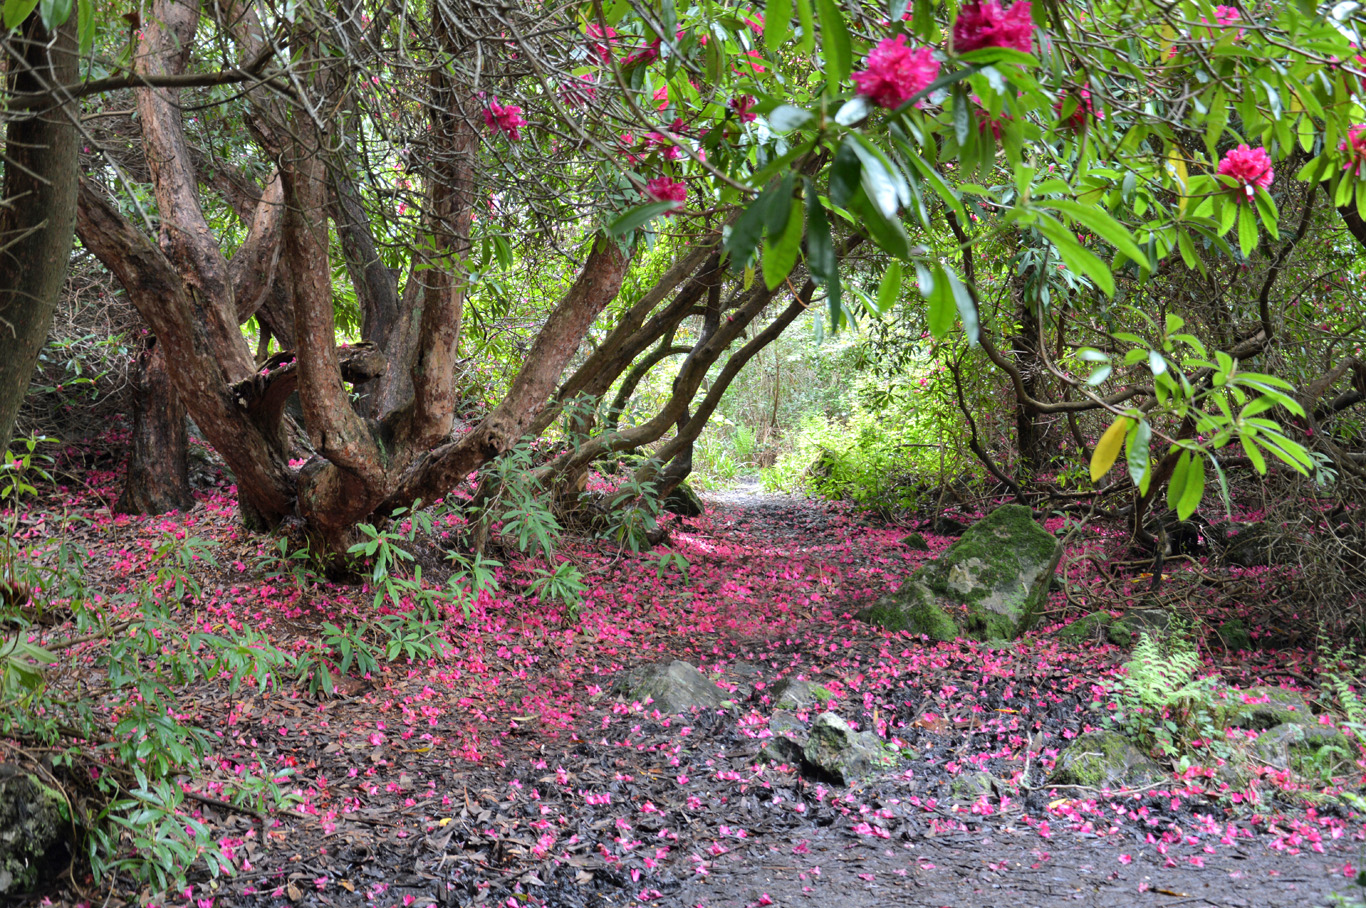 Rhododendron carpets